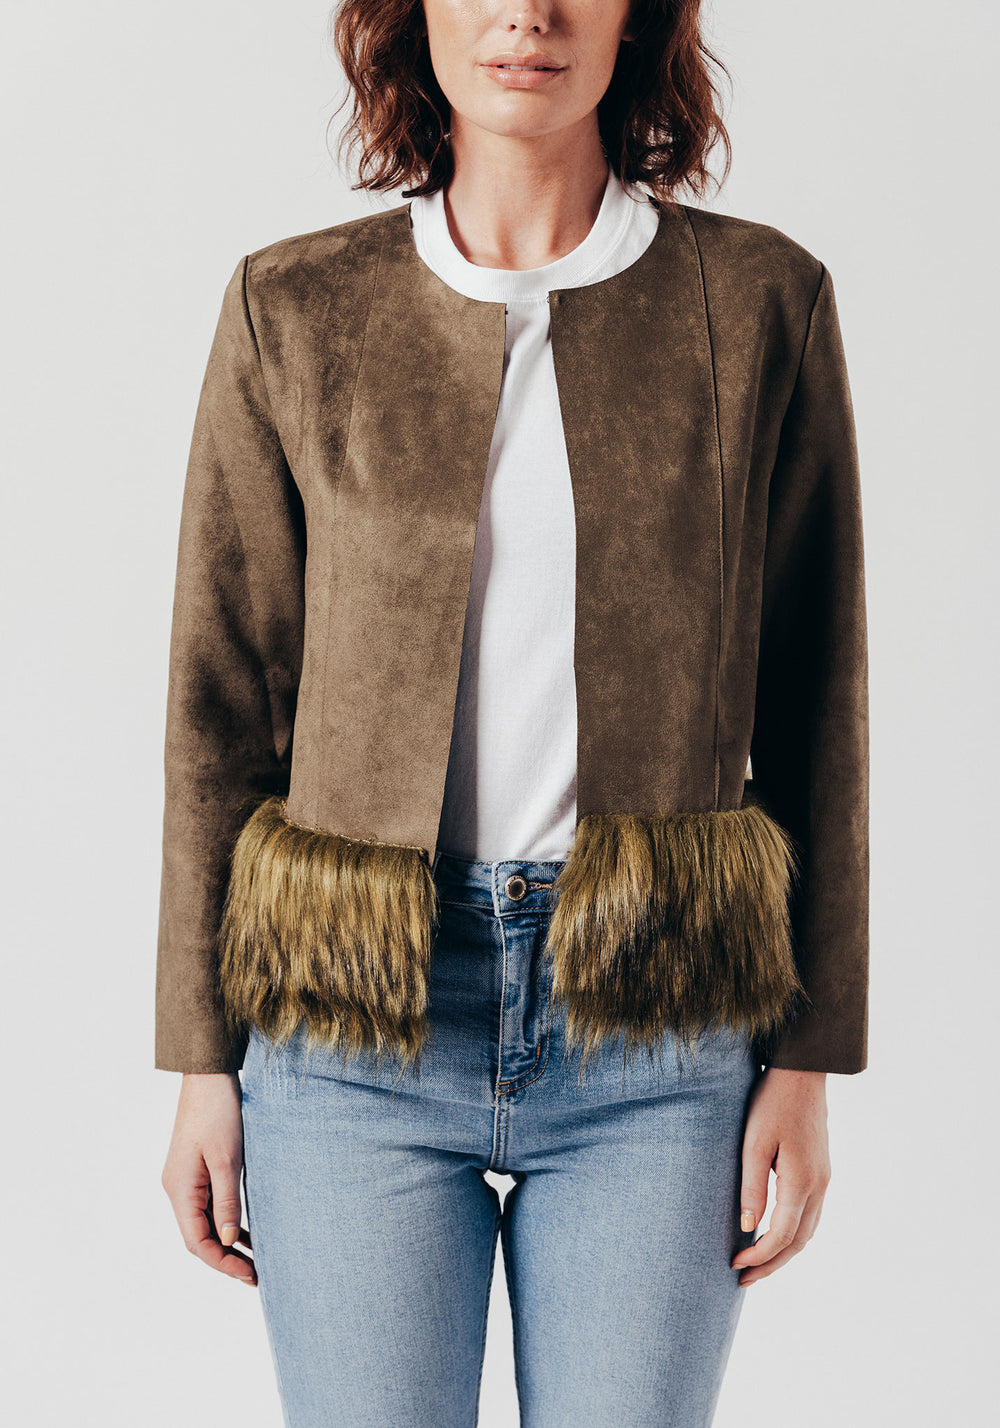 Green Faux Suede Jacket with Faux Fur Trim